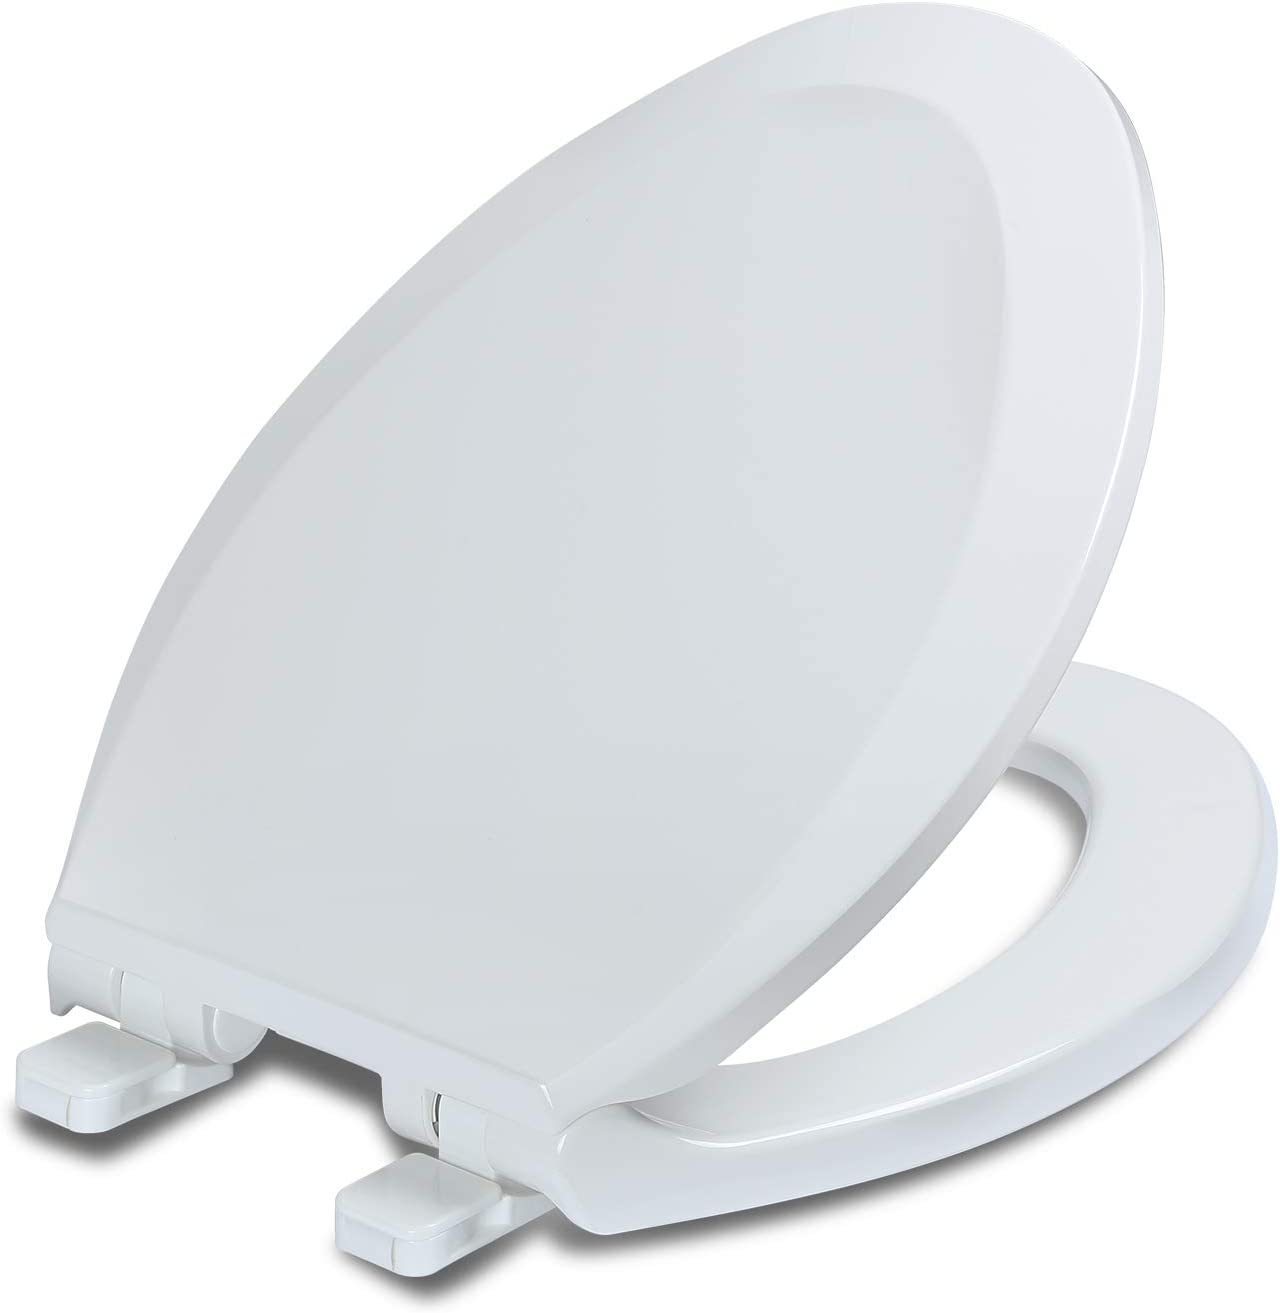 Elongated Toilet Seat with Lid, Quiet Close, Fits Standard